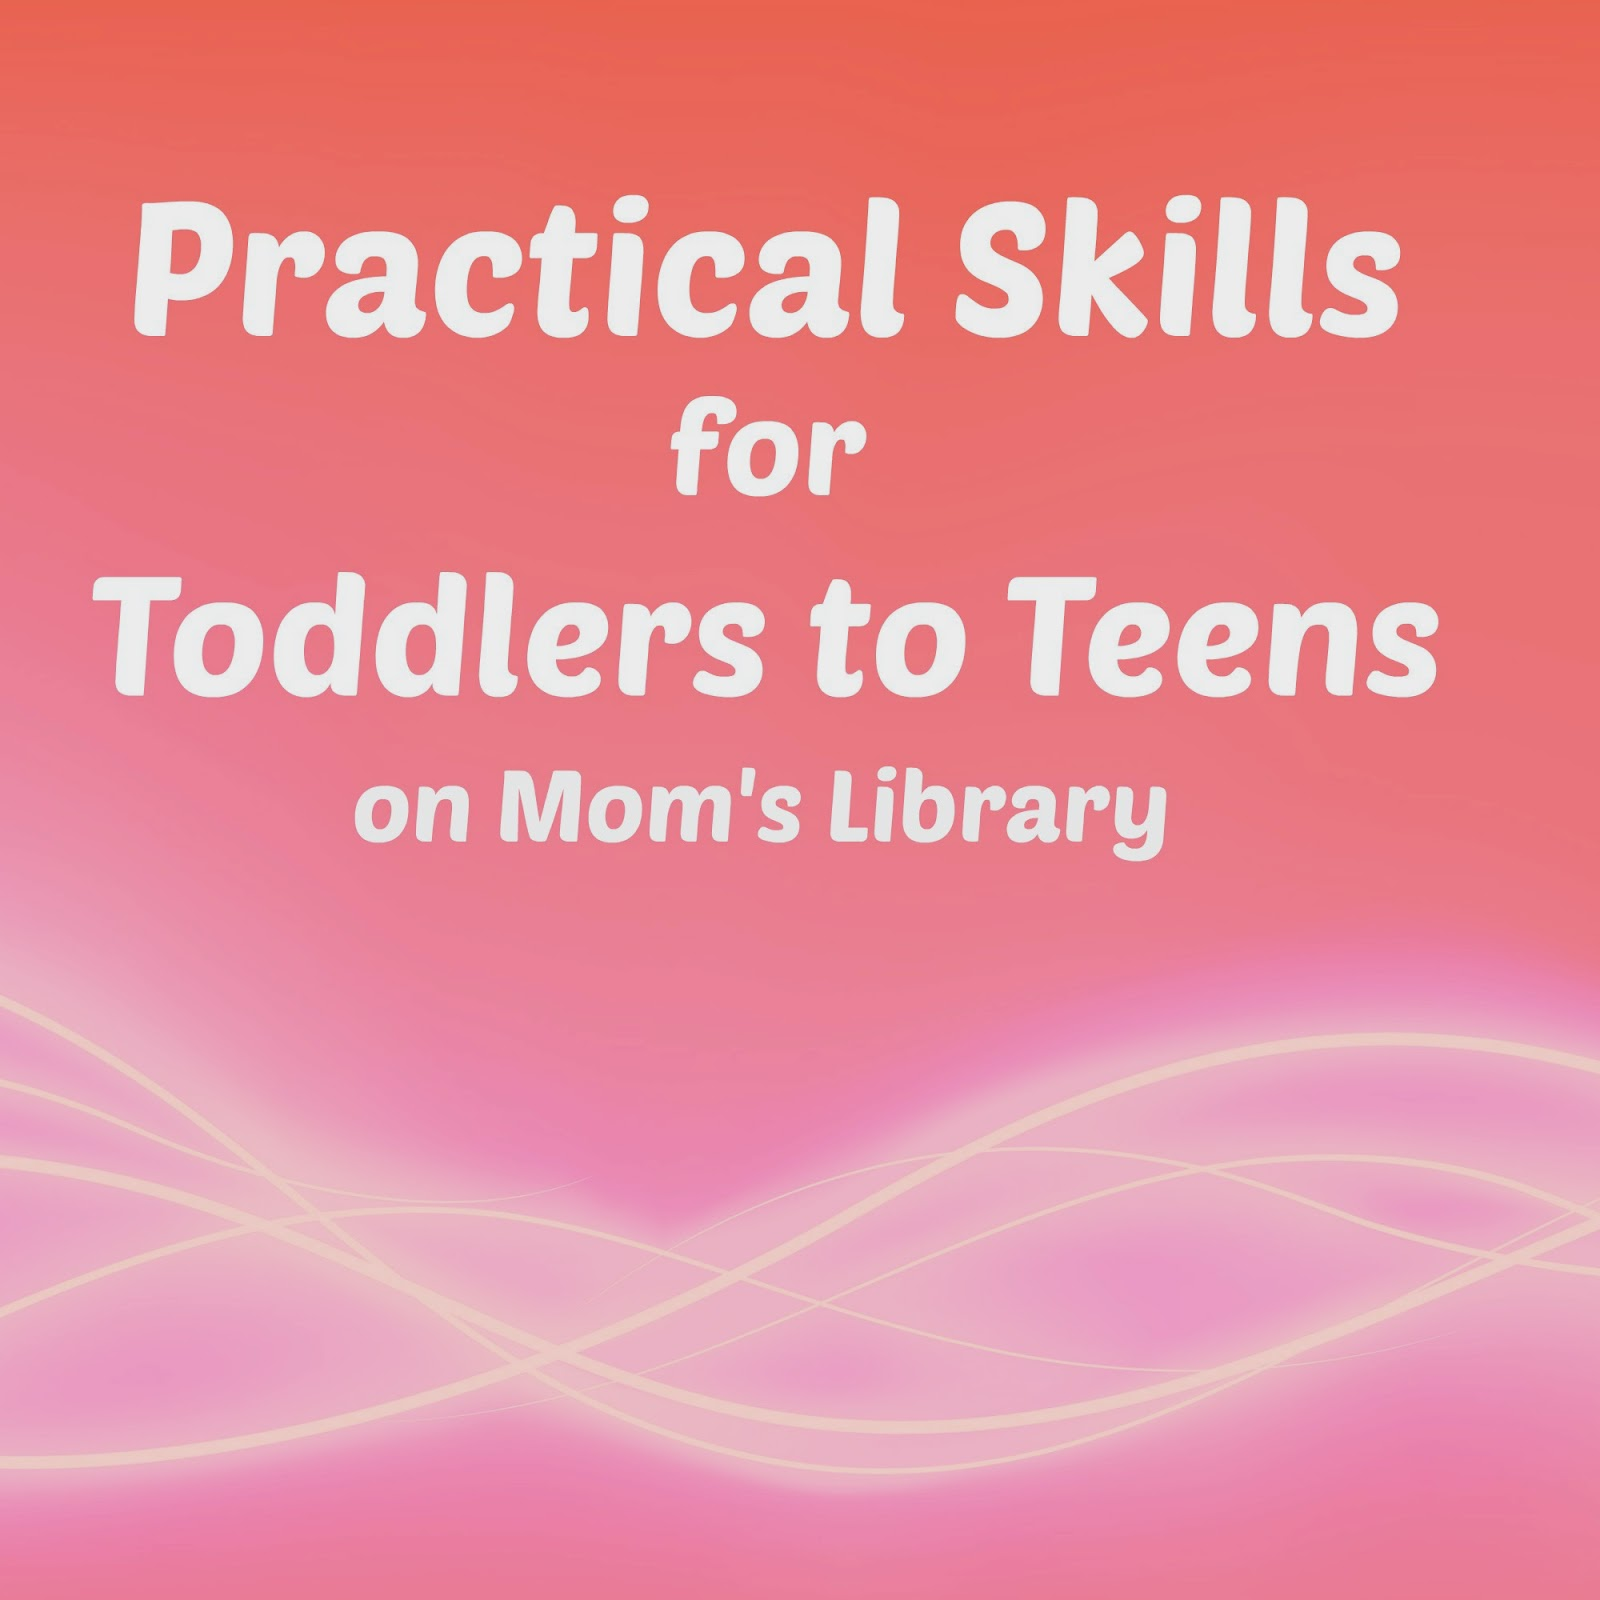 Practical Skills on Mom's Library